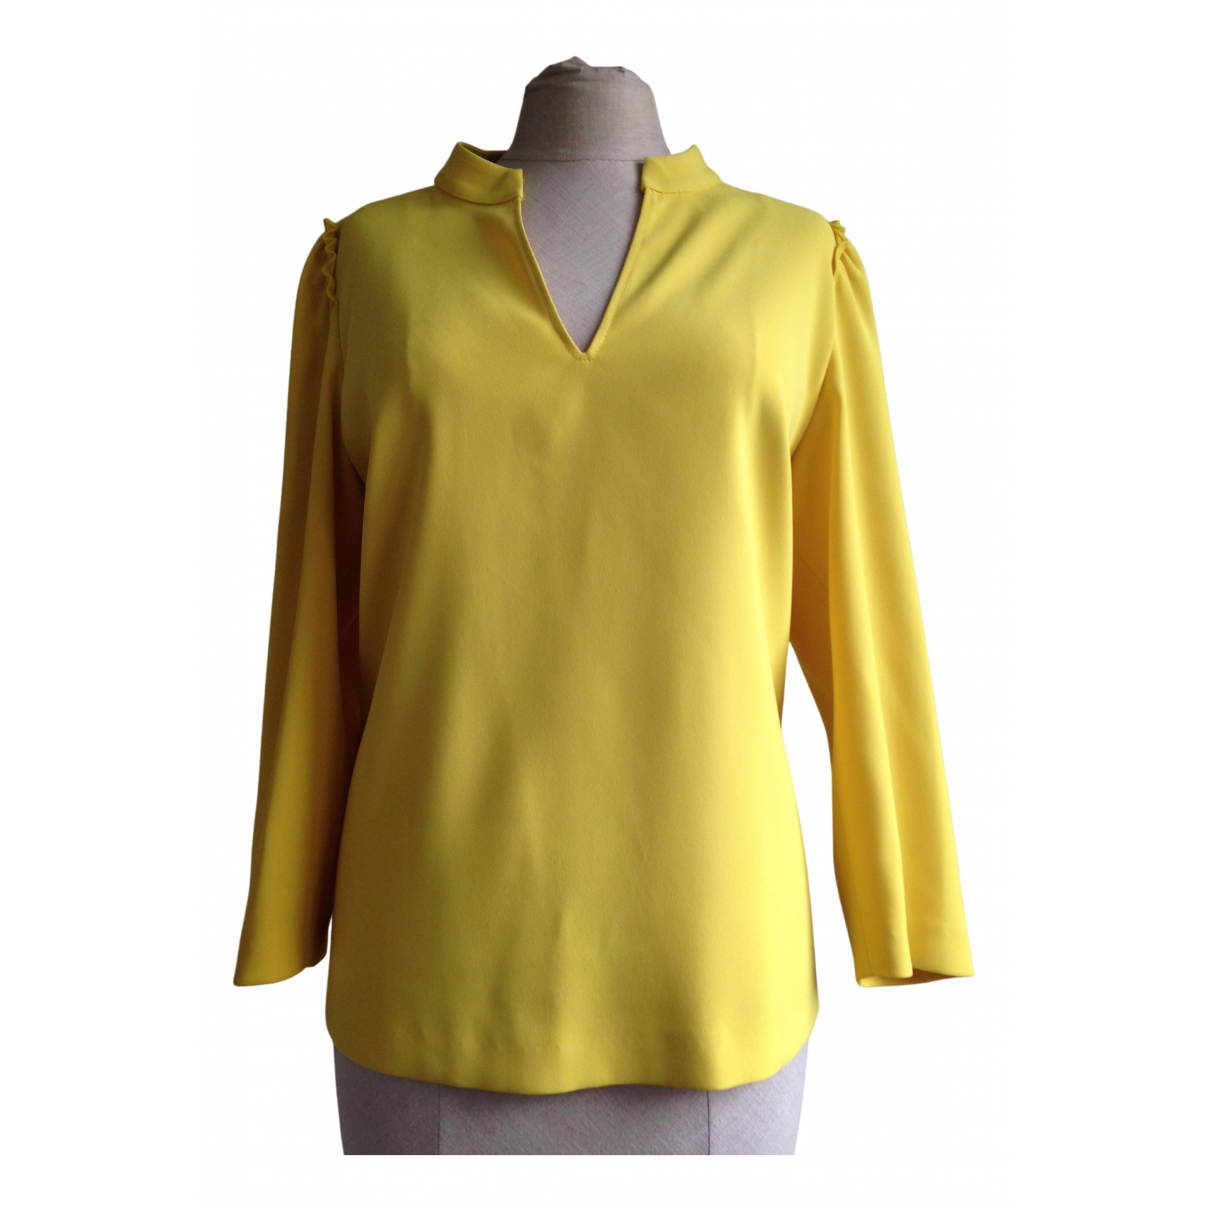 Xandres \N Yellow  top for Women 38 FR